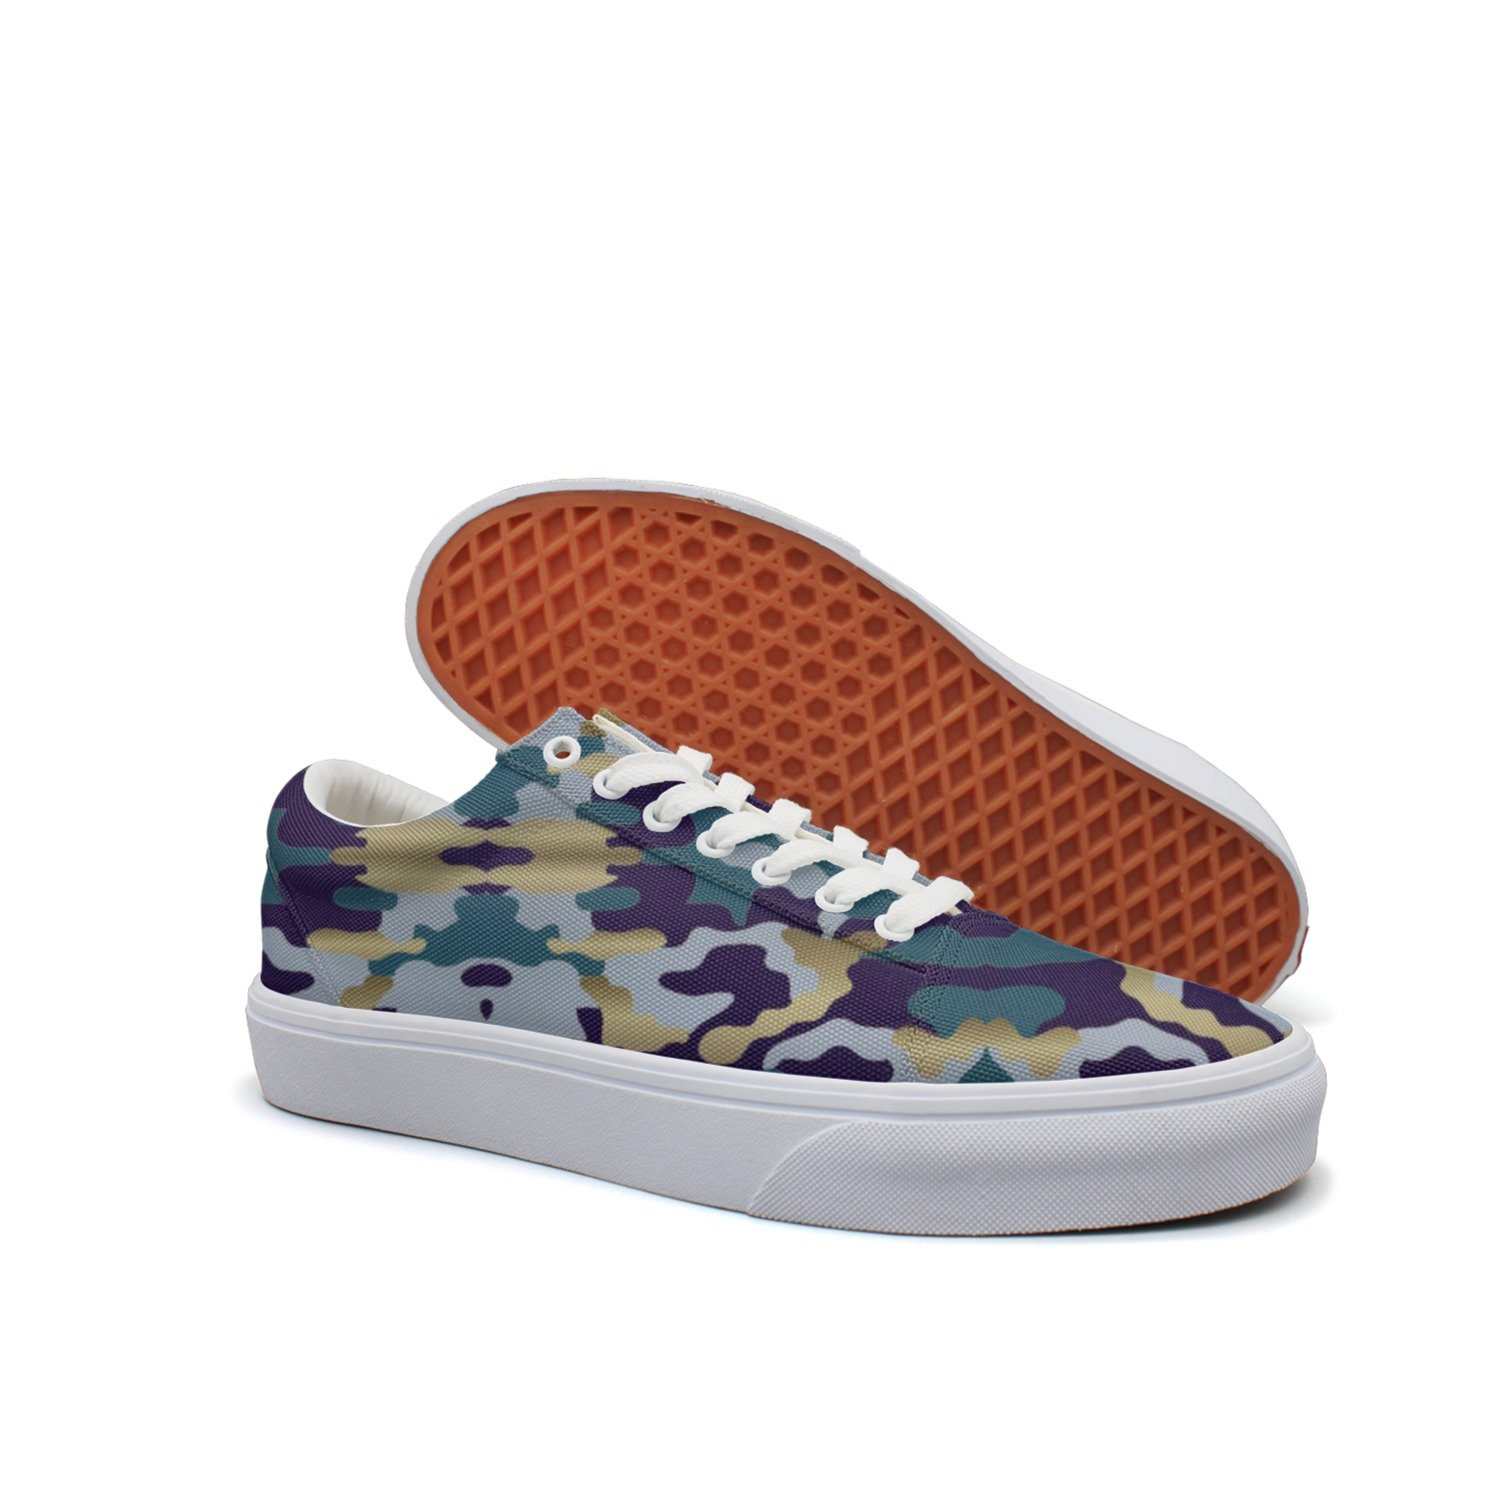 KKLDFD Snow Camo Camo Patterns Hunting Hunting Coats Womens Canvas Low-top Slip On Shoes Soft Spot White